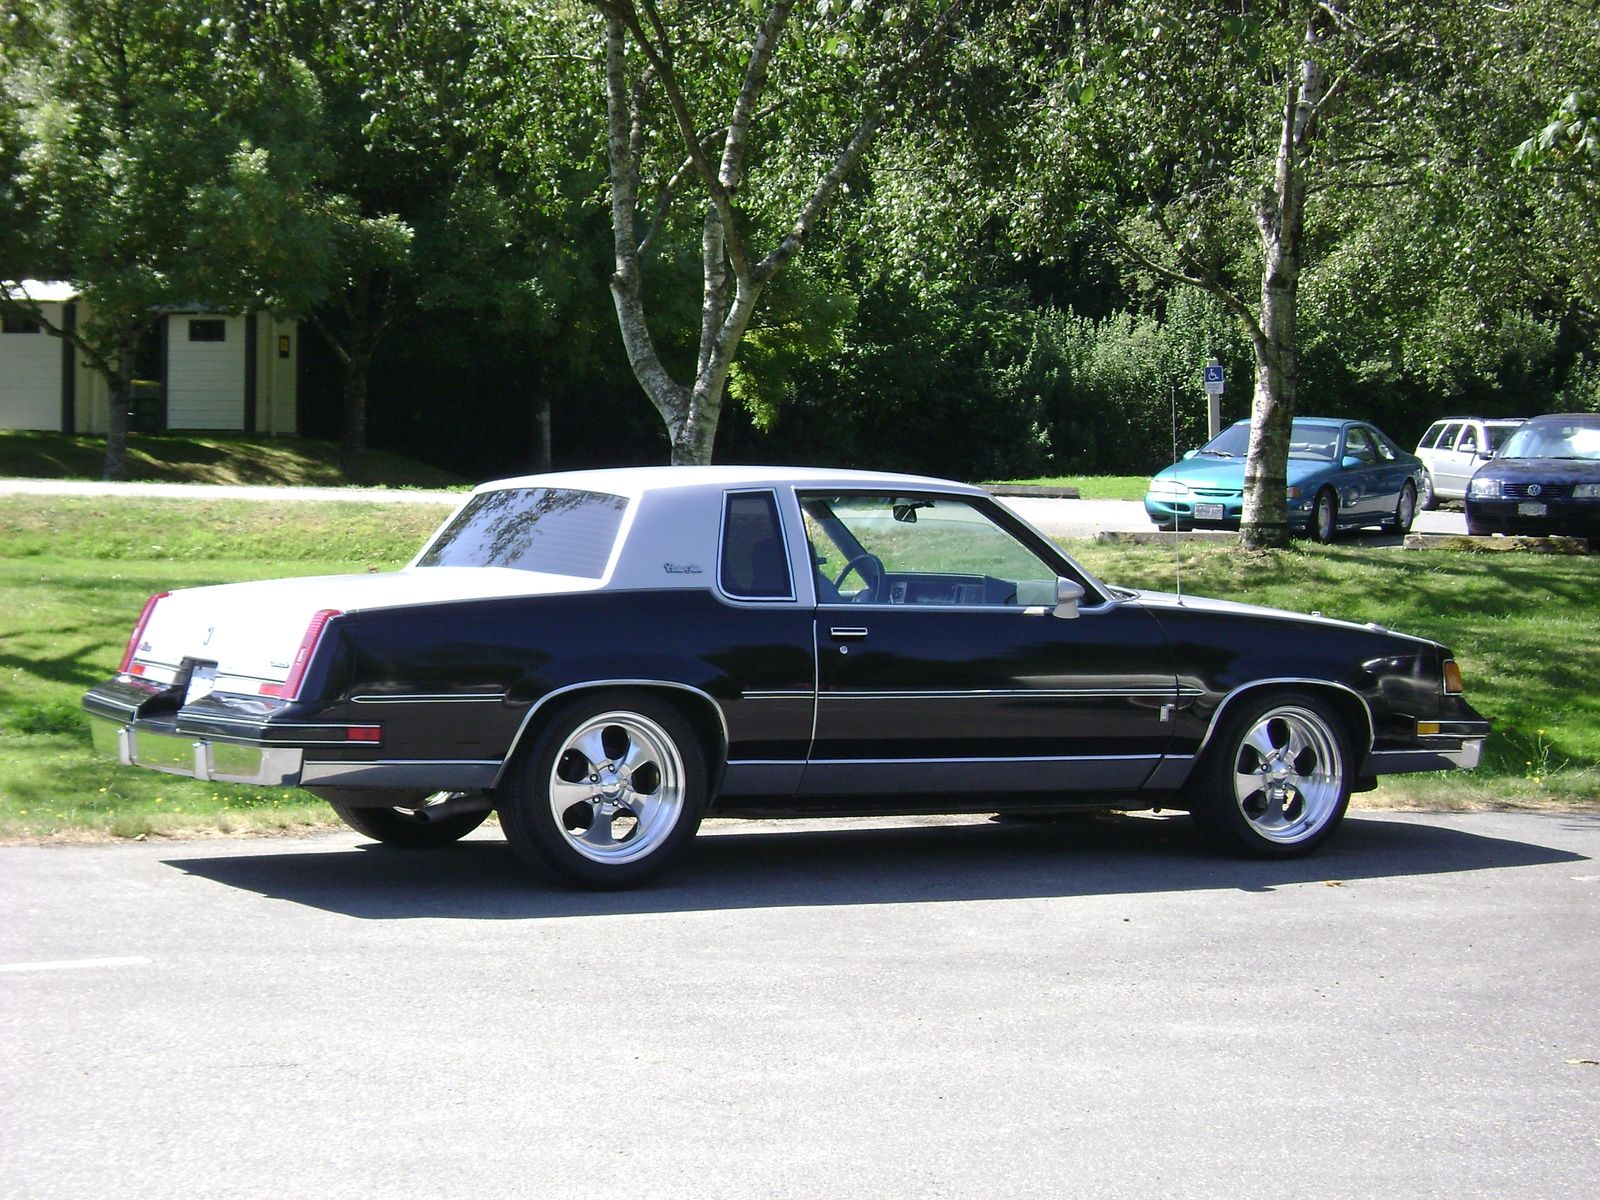 Make oldsmobile model cutlass year 1987 exterior color charcoal interior color gray doors two door vehicle condition good for more inf pinteres